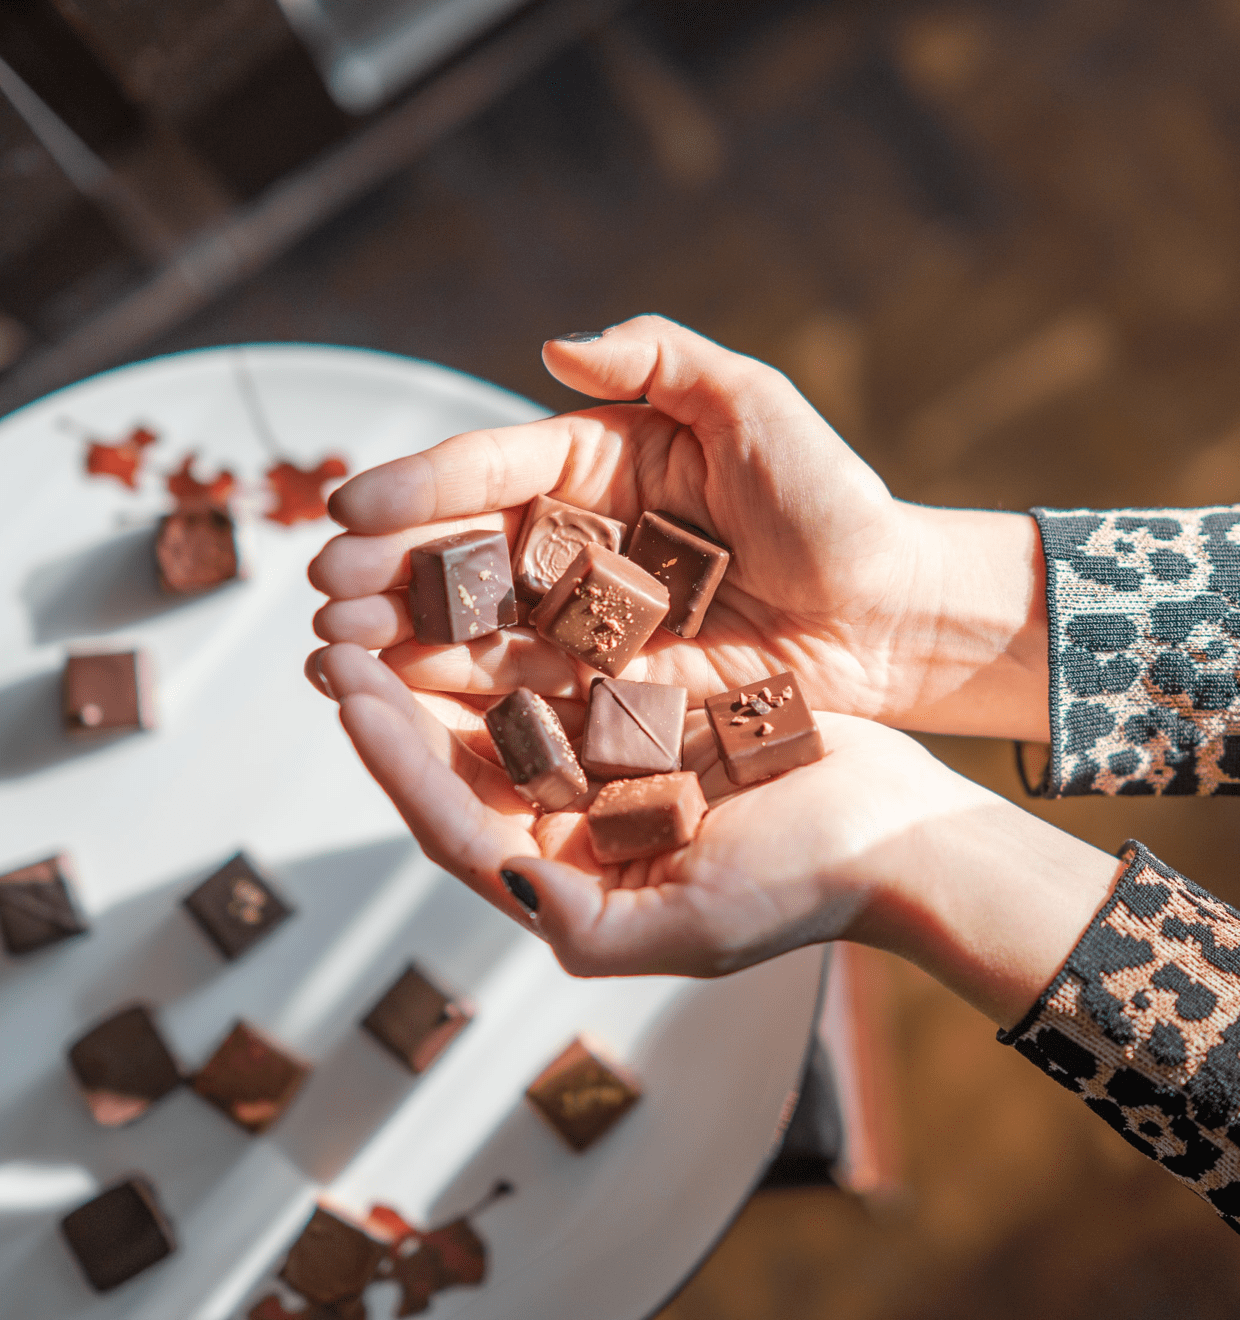 Photo of a woman's hands holding pieces of yummy looking chocolate above a plate with more chocolates